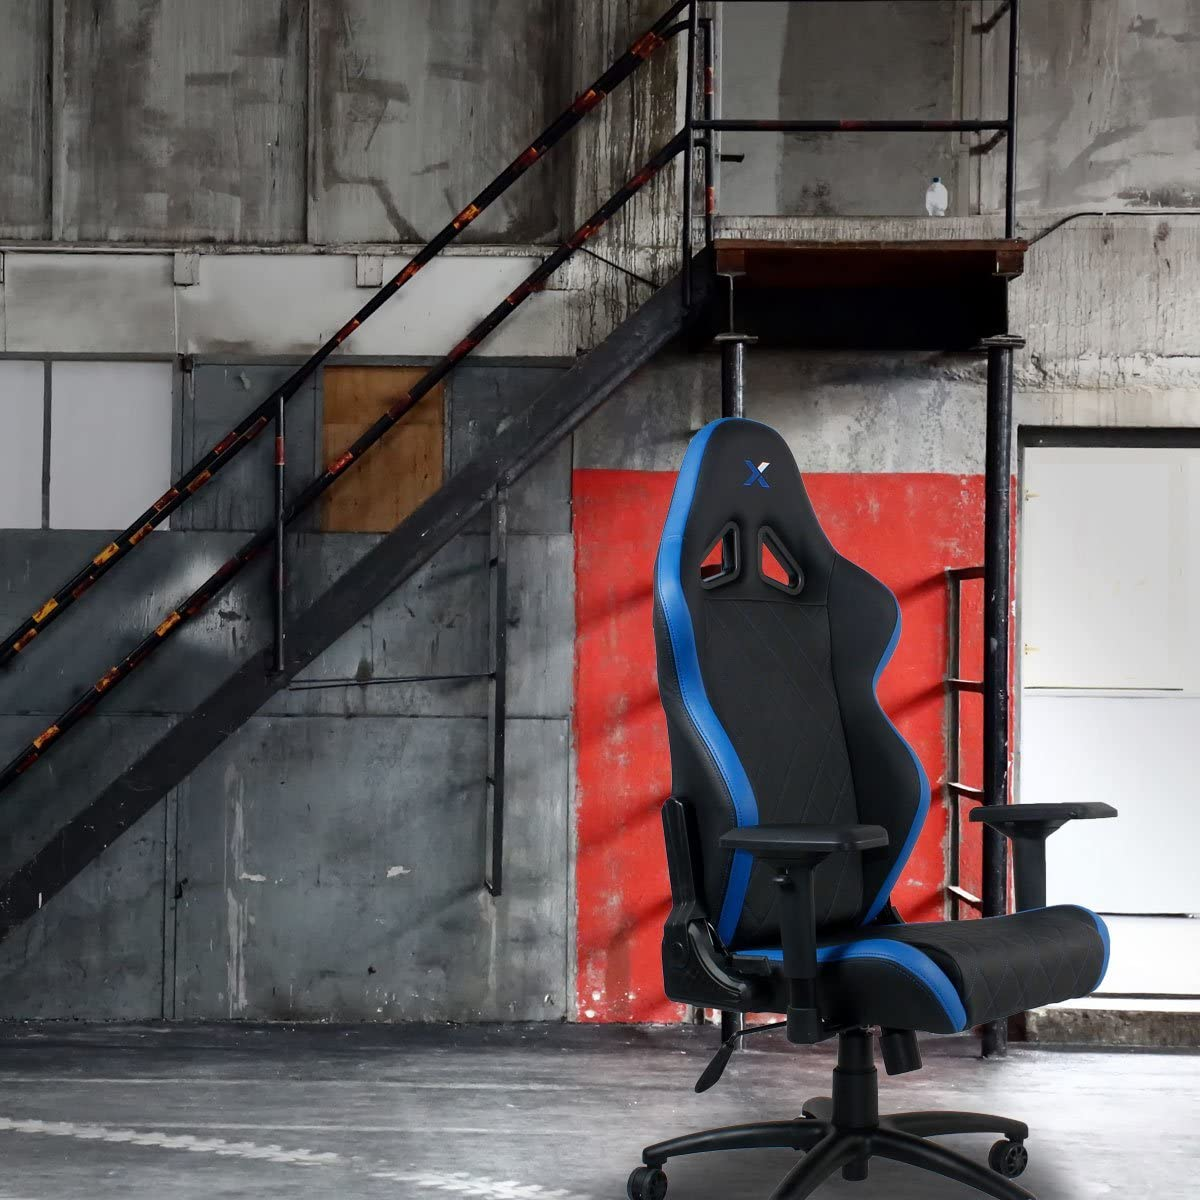 Ferrino Line Red on Black Diamond Patterned Gaming and Lifestyle Chair by RapidX RX-FER001BLRED